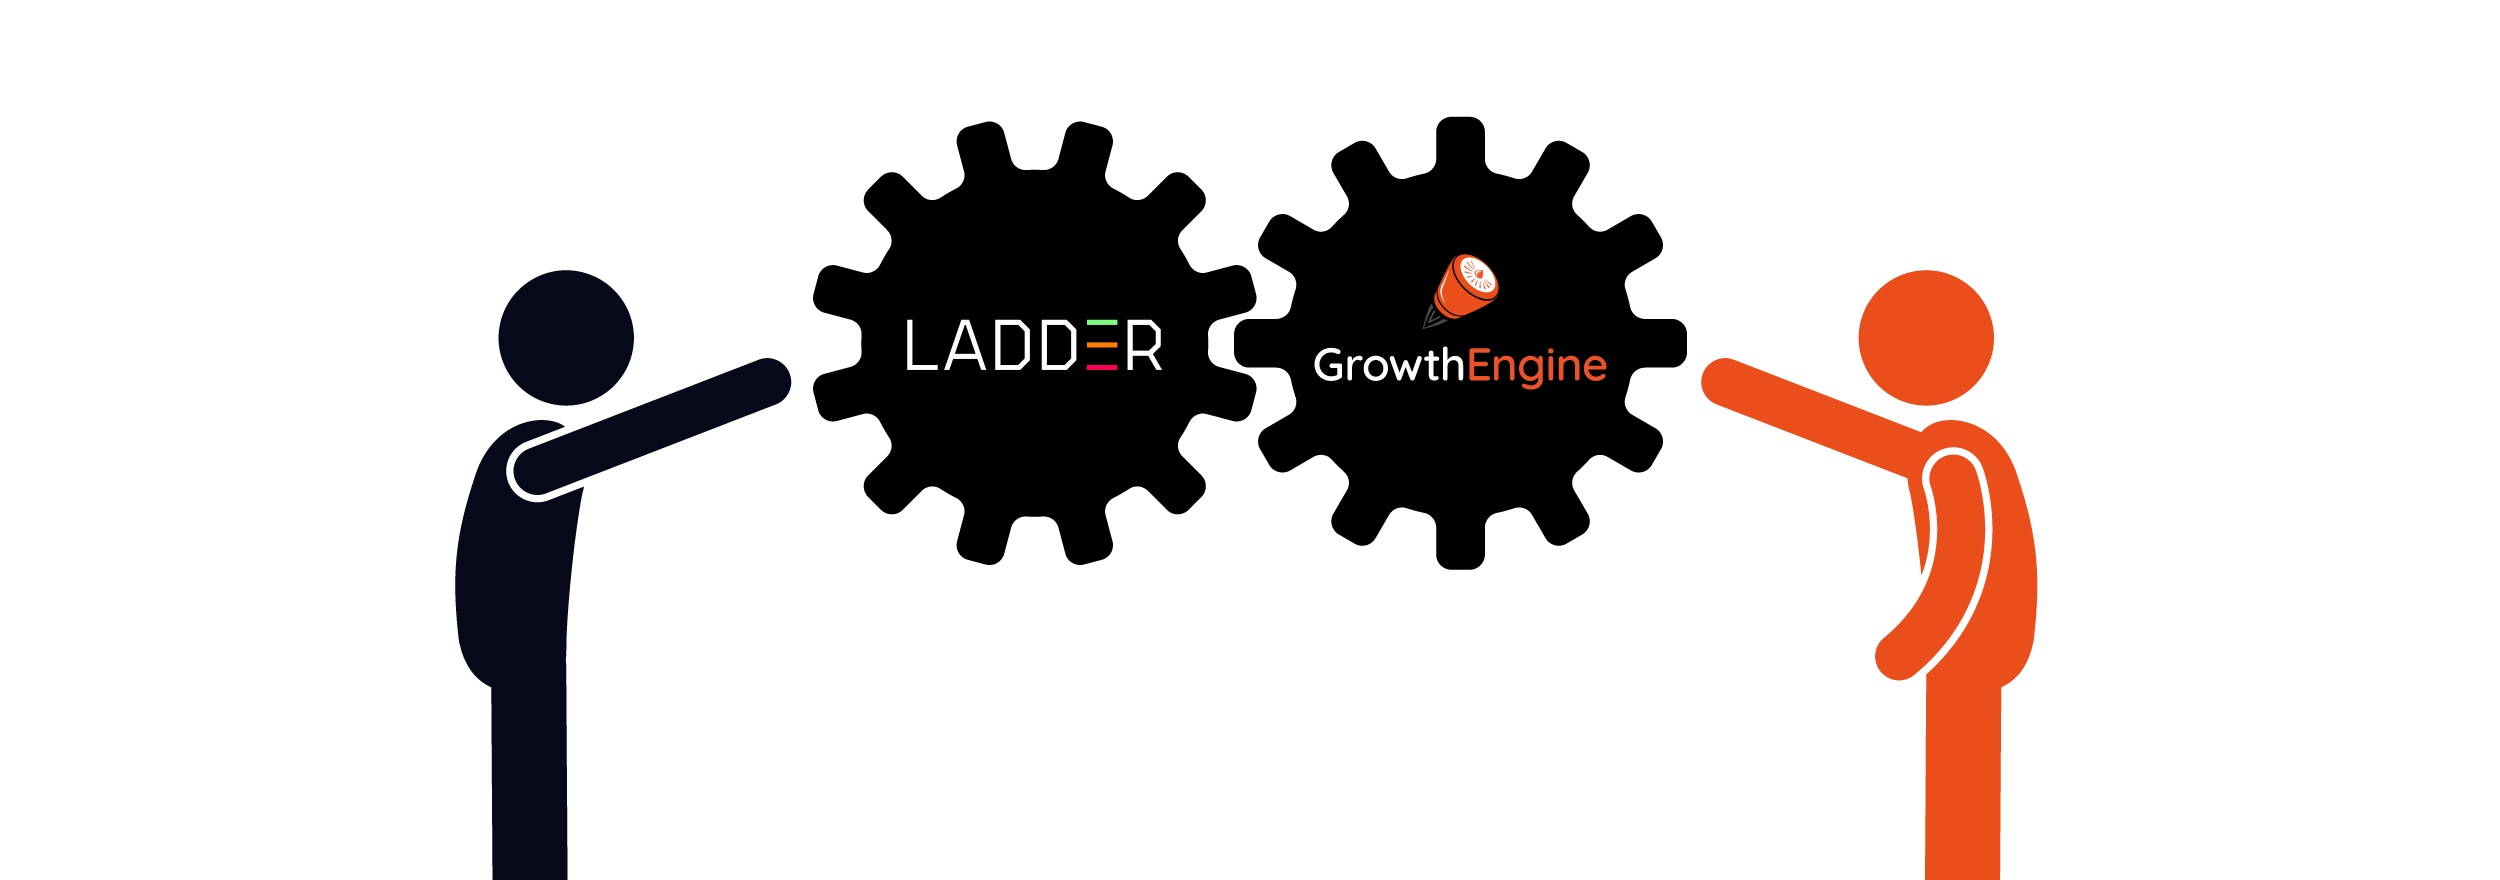 Acquiring A Growth Hacking Agency: Ladder's M&A Of Growth Engine